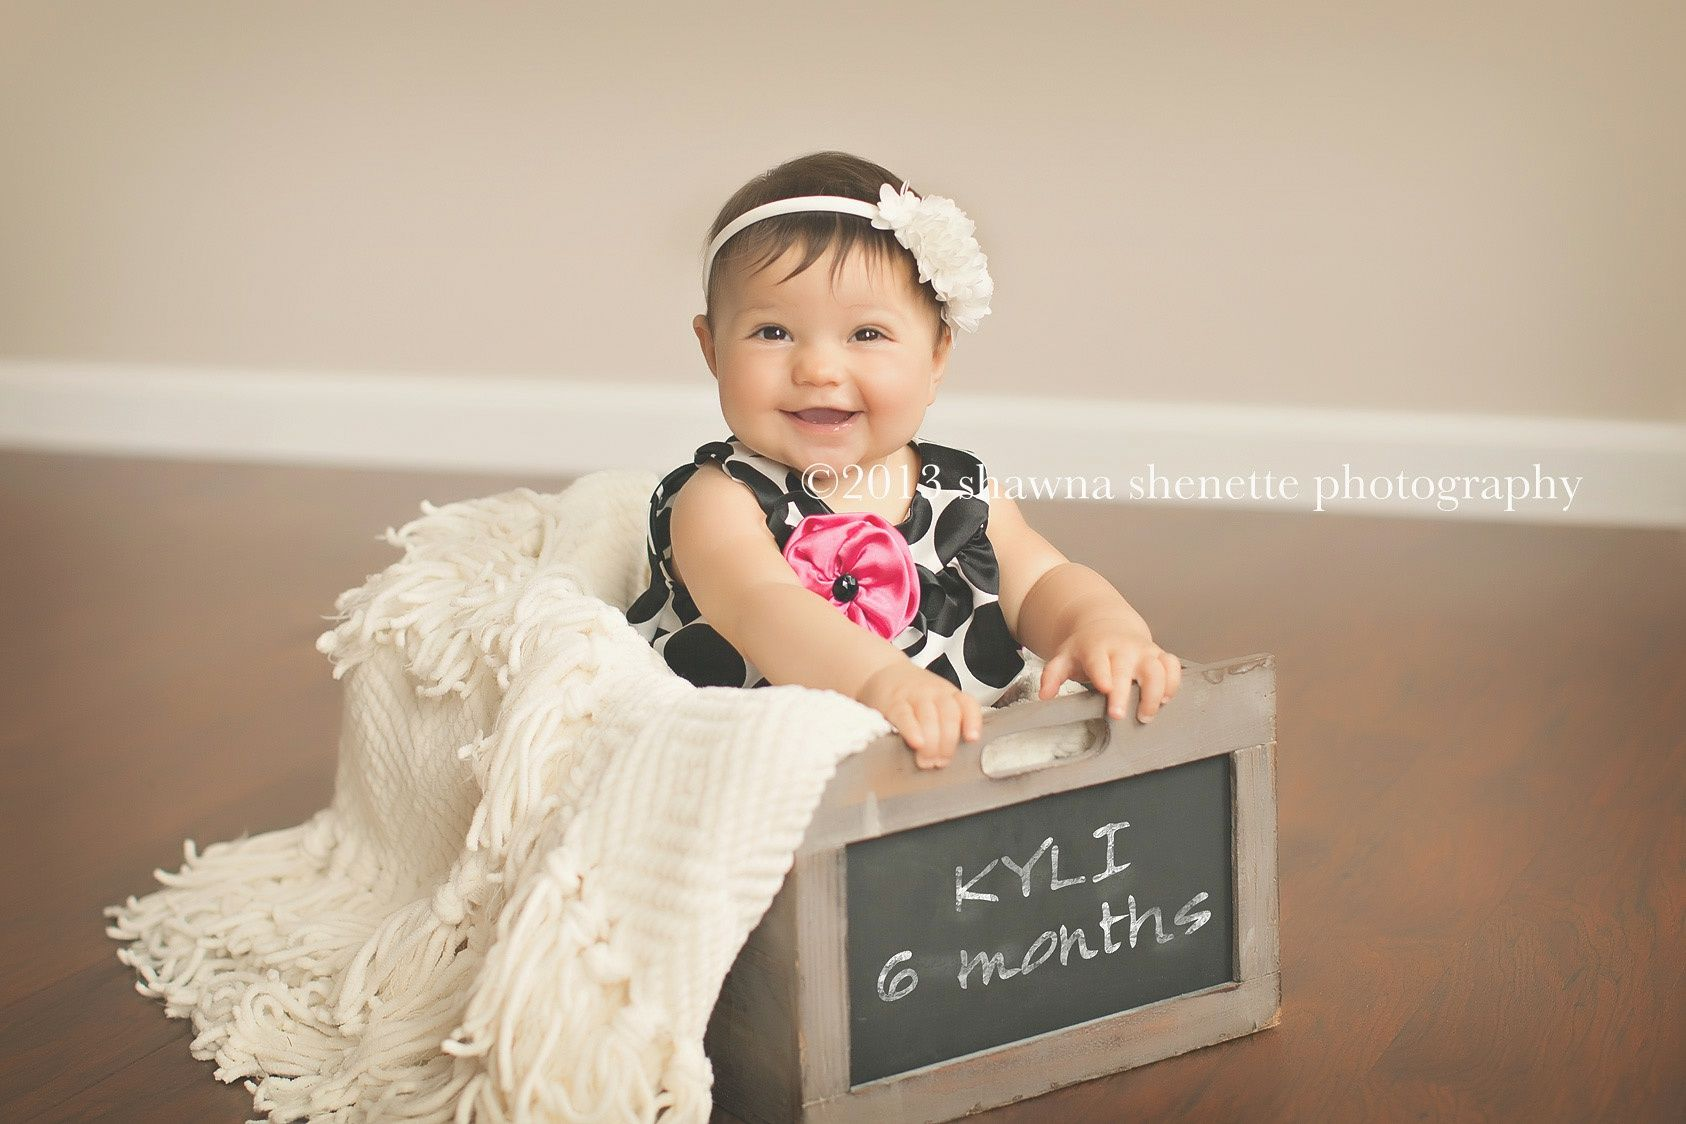 6 month old baby girl photo inspiration ideas massachusetts baby photographer